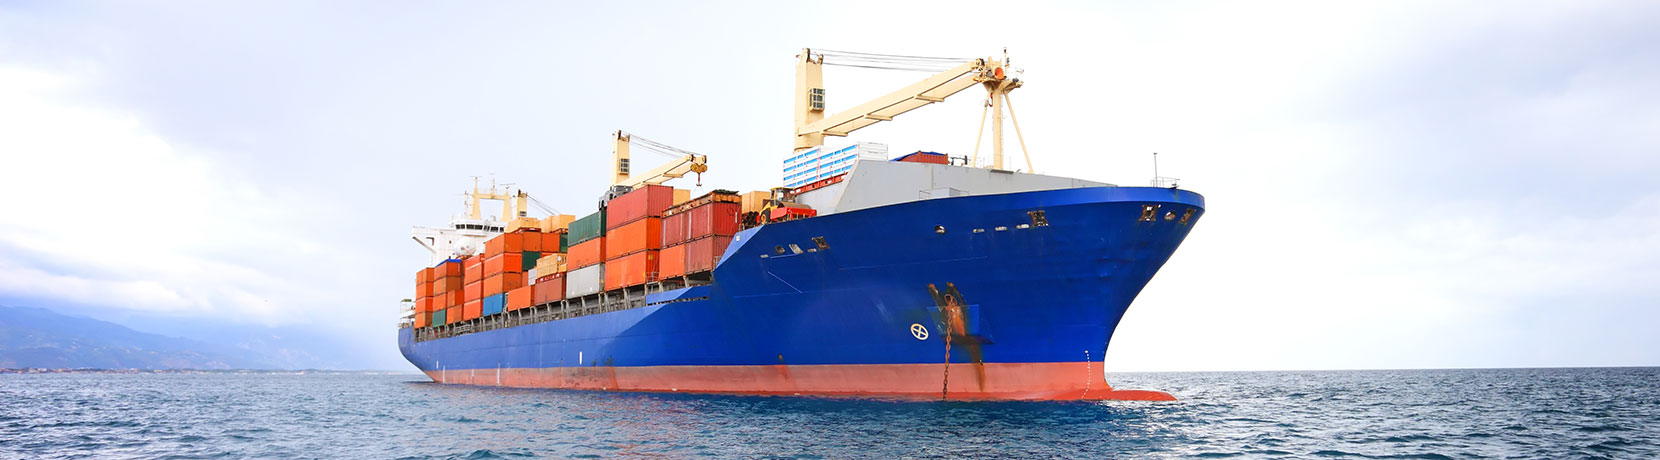 Greening of the Shipping Industry